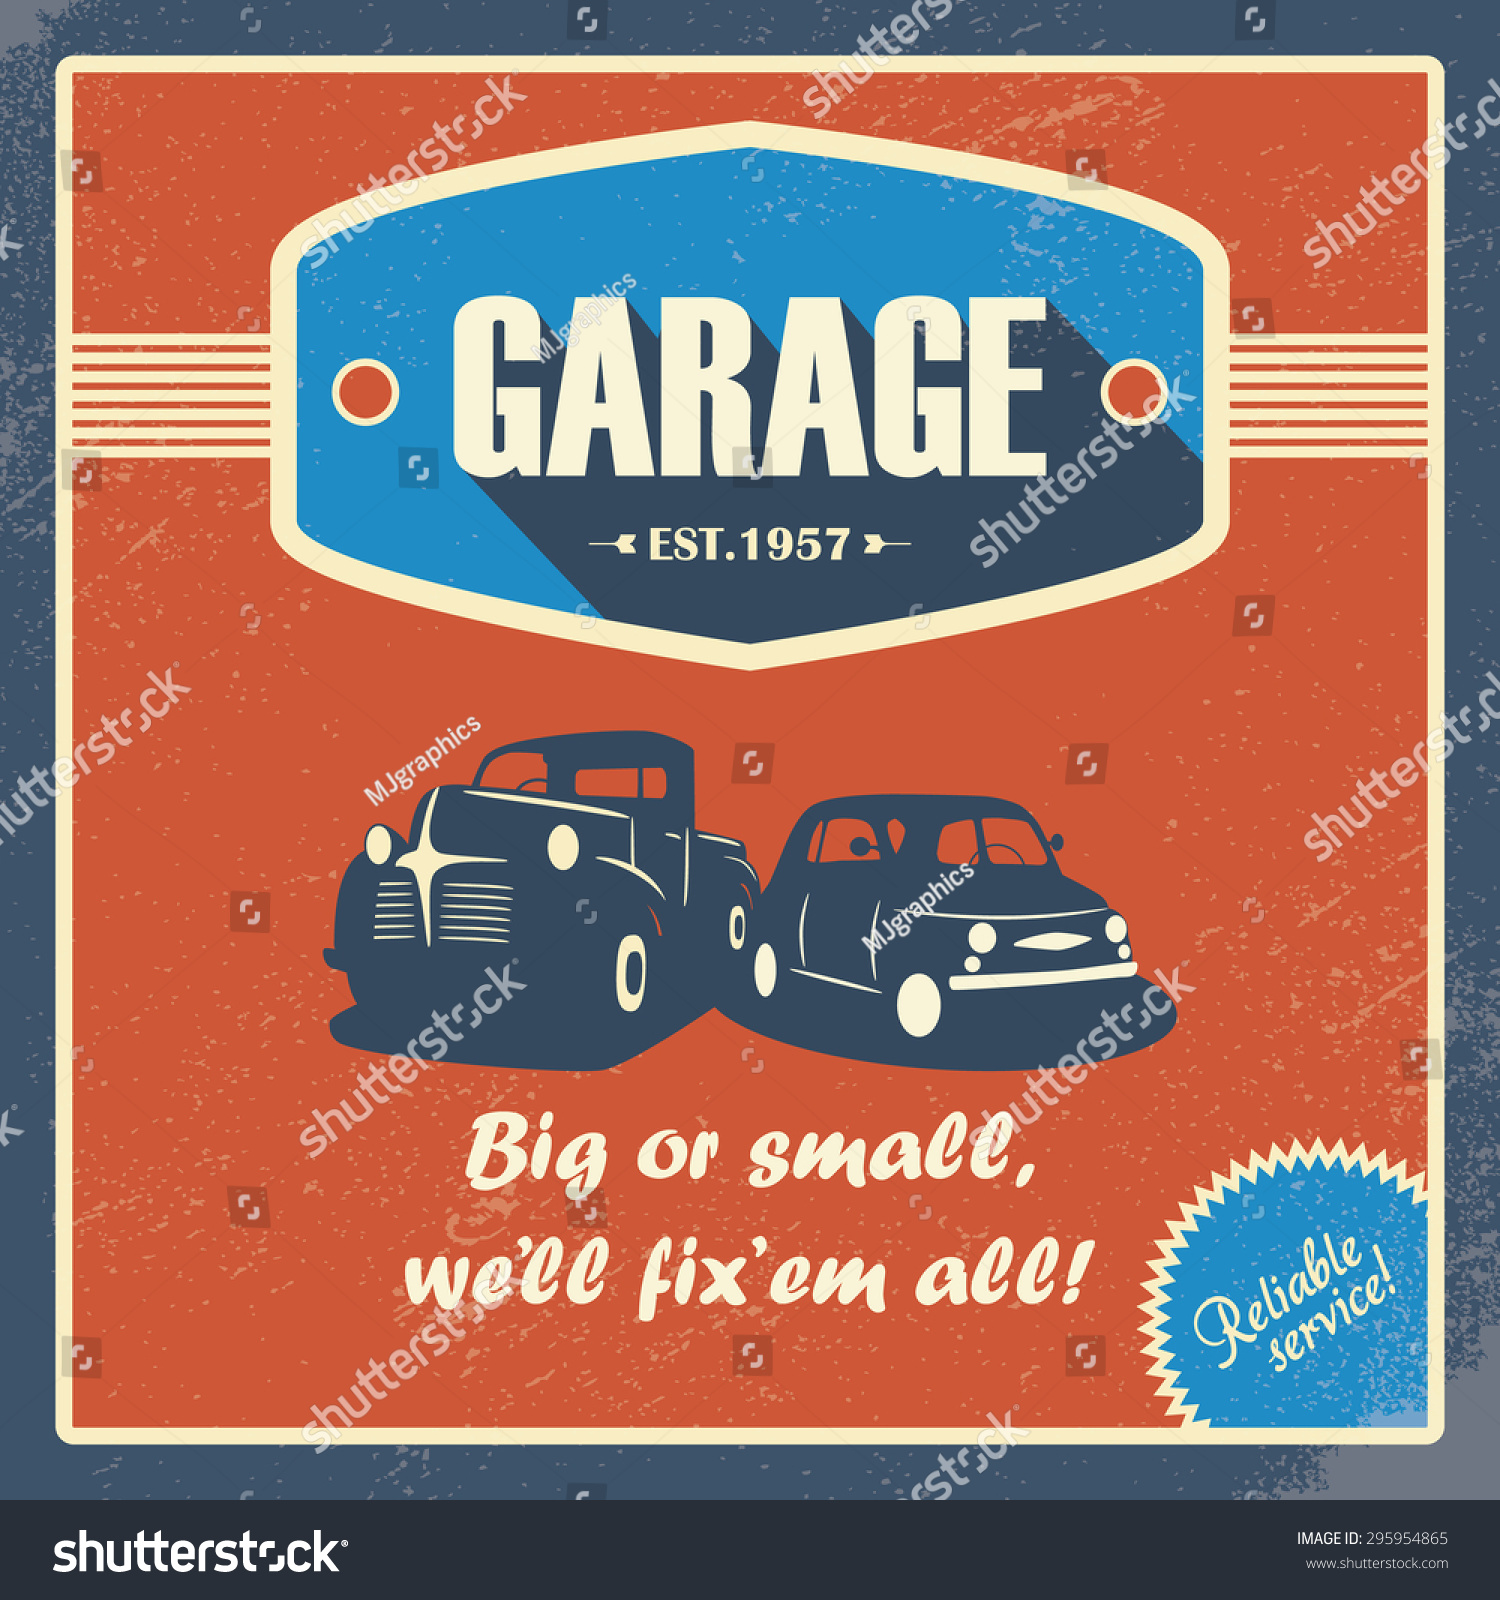 Classic Garage Poster Vintage Cars Retro Stock Vector 295954865 ...